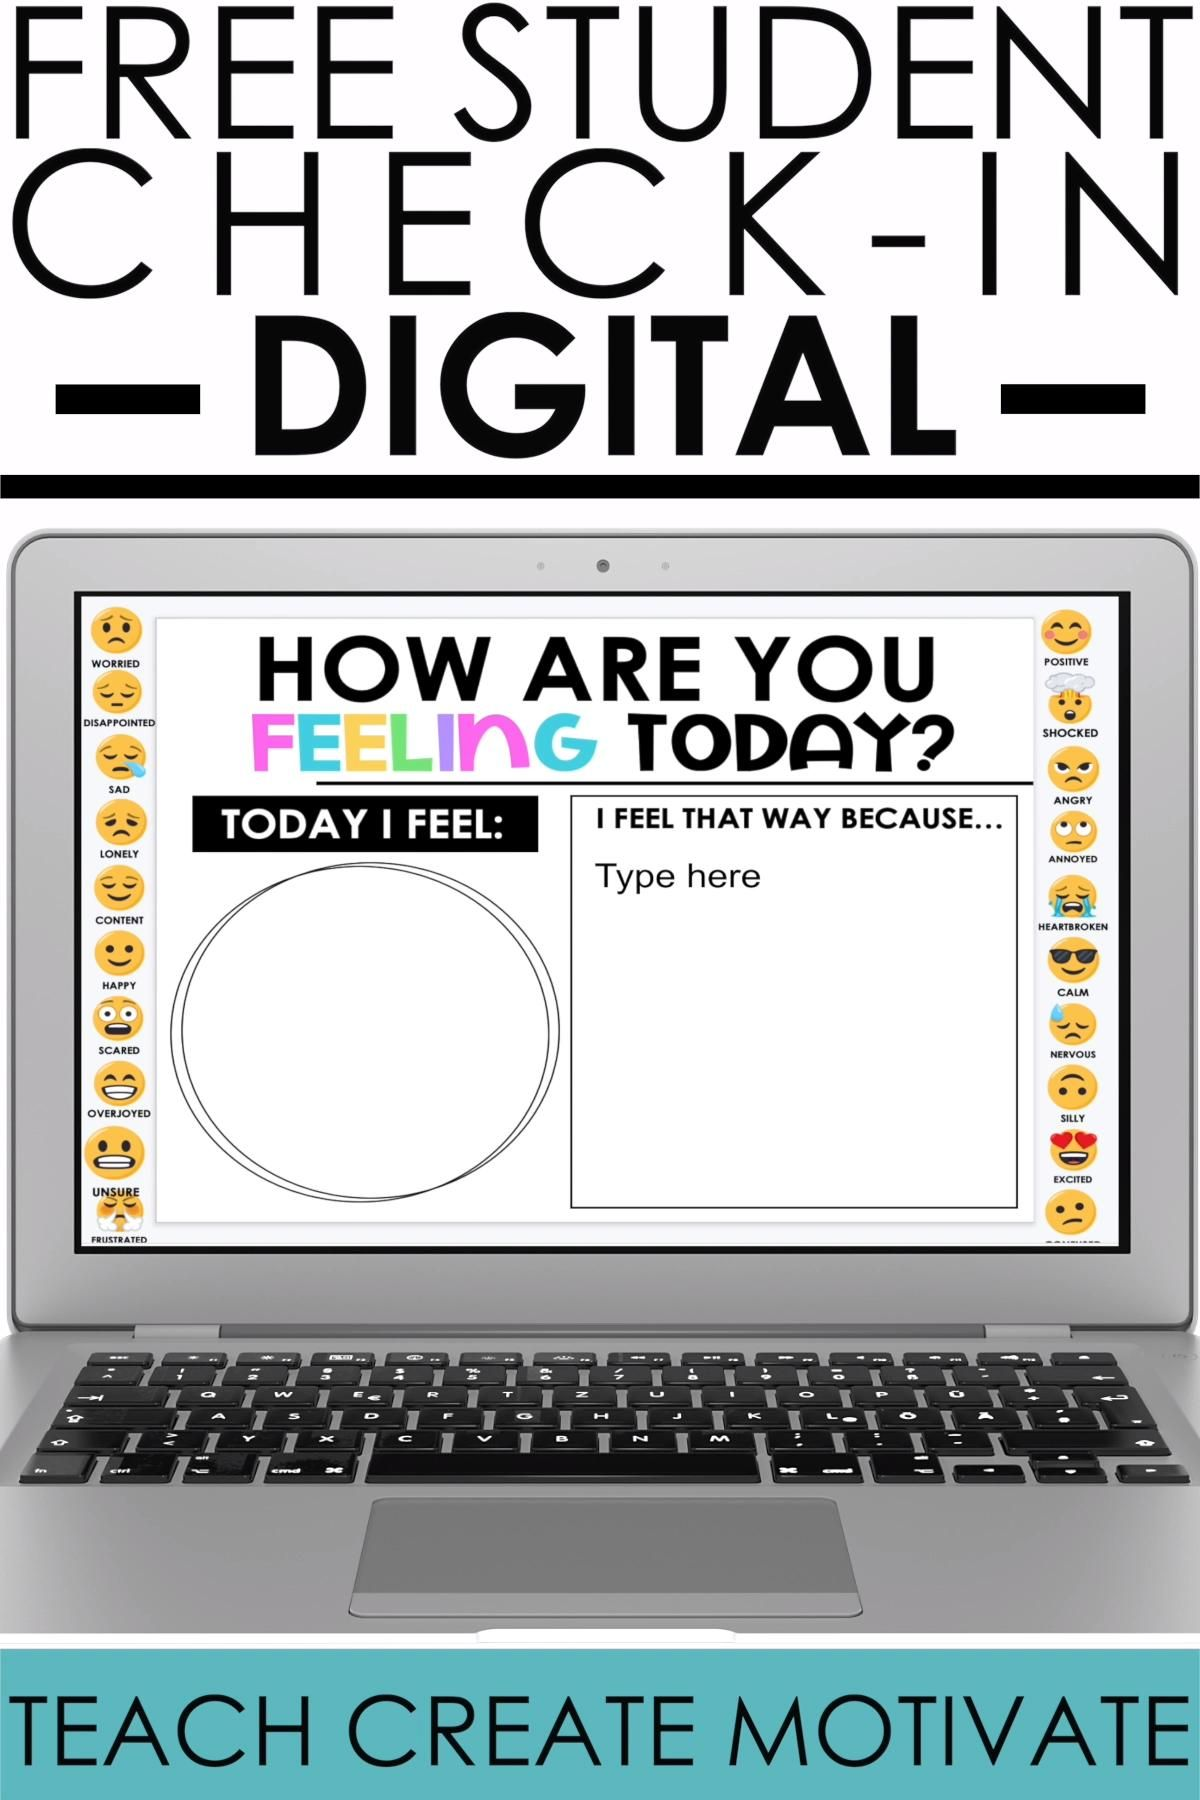 My FREE Digital Check In includes a slide and also a poster that can be used for a calm down area in your classroom. This freebie is a perfect management tool and resource for your classroom, or for distance learning! The check in strategy is a way for your students to express how they're feeling and to support them in a positive way. This idea could be used for grades ranging from 1st to 6th.